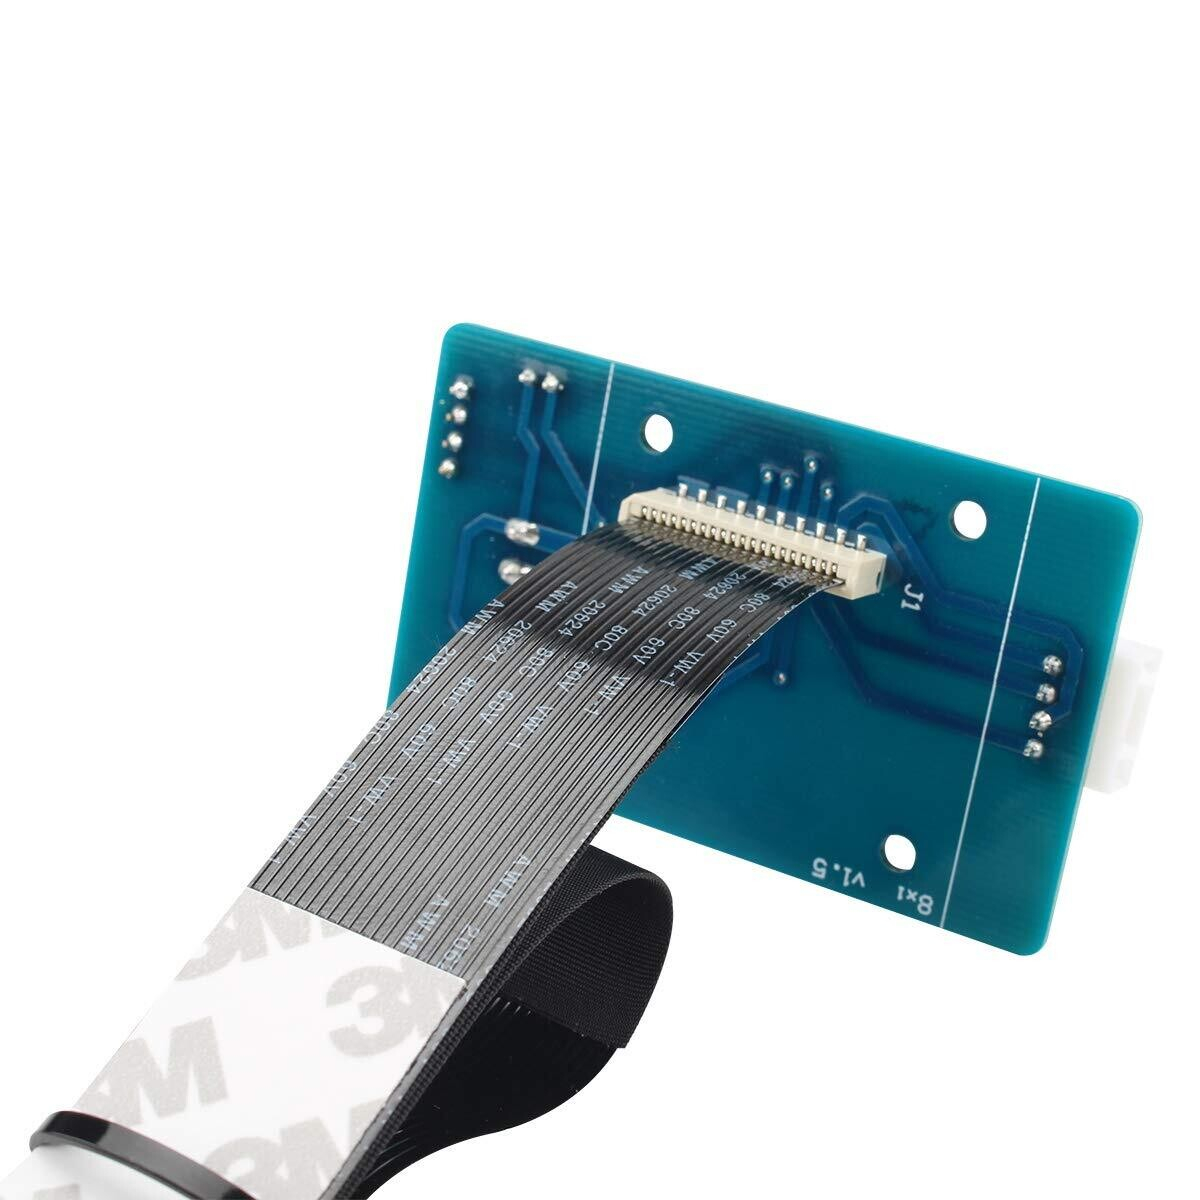 X1 Extruder Pcb & Ribbon cable